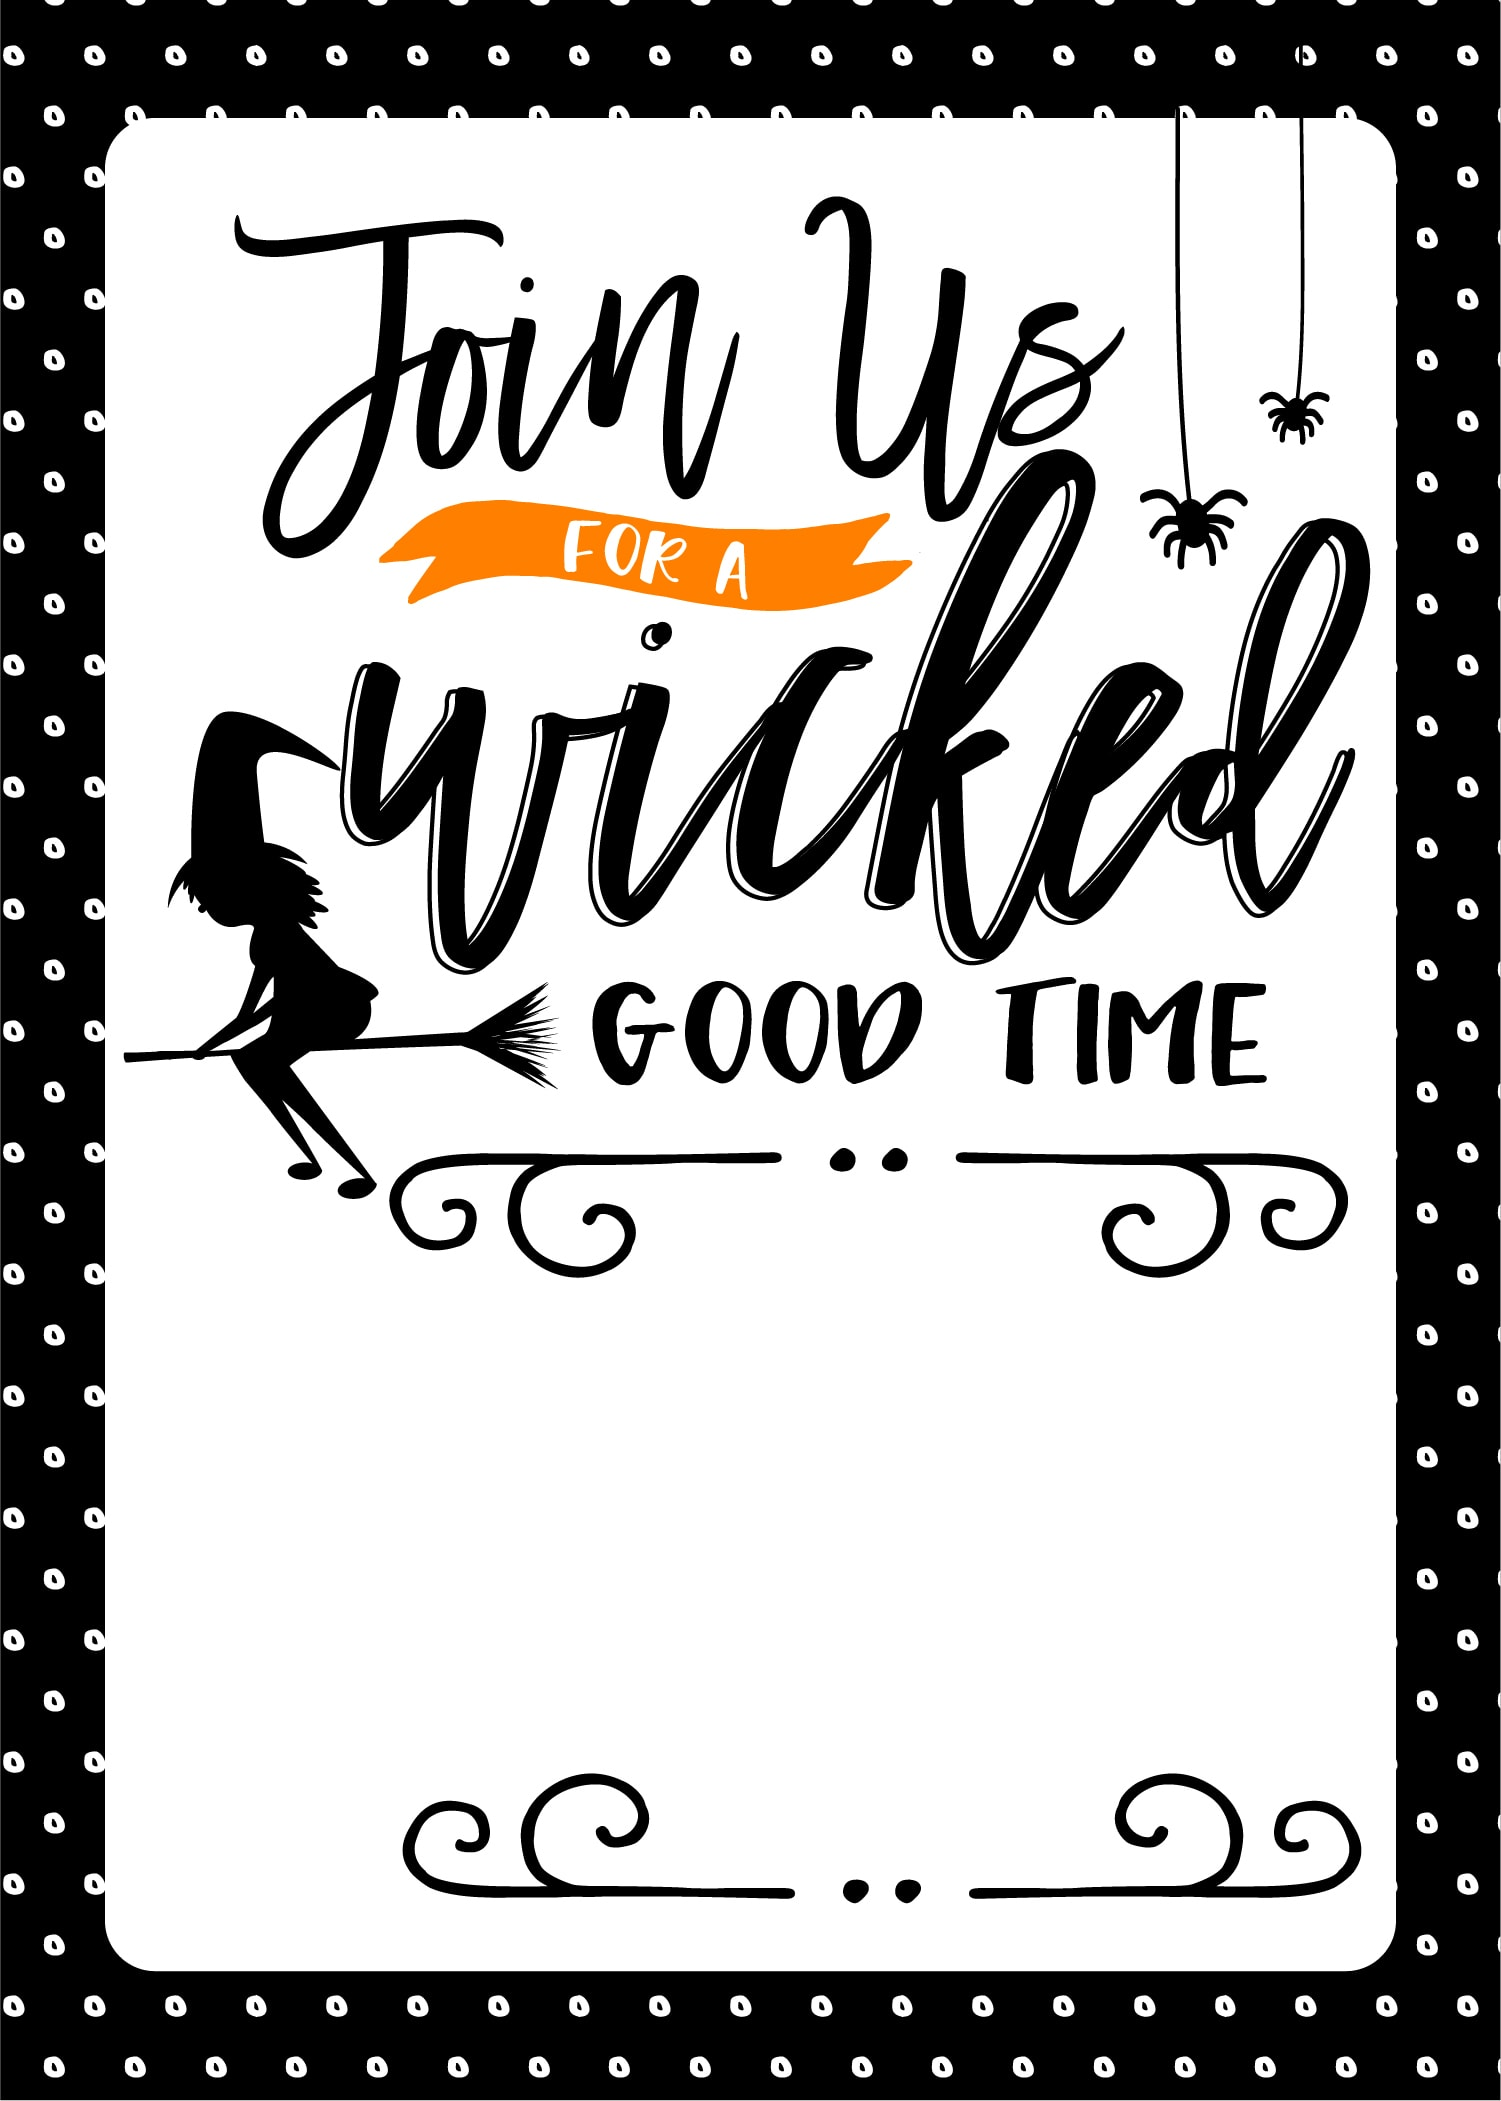 photo regarding Printable Halloween Party Invitations titled Free of charge Halloween Social gathering Printables - Enjoyable Loving Households